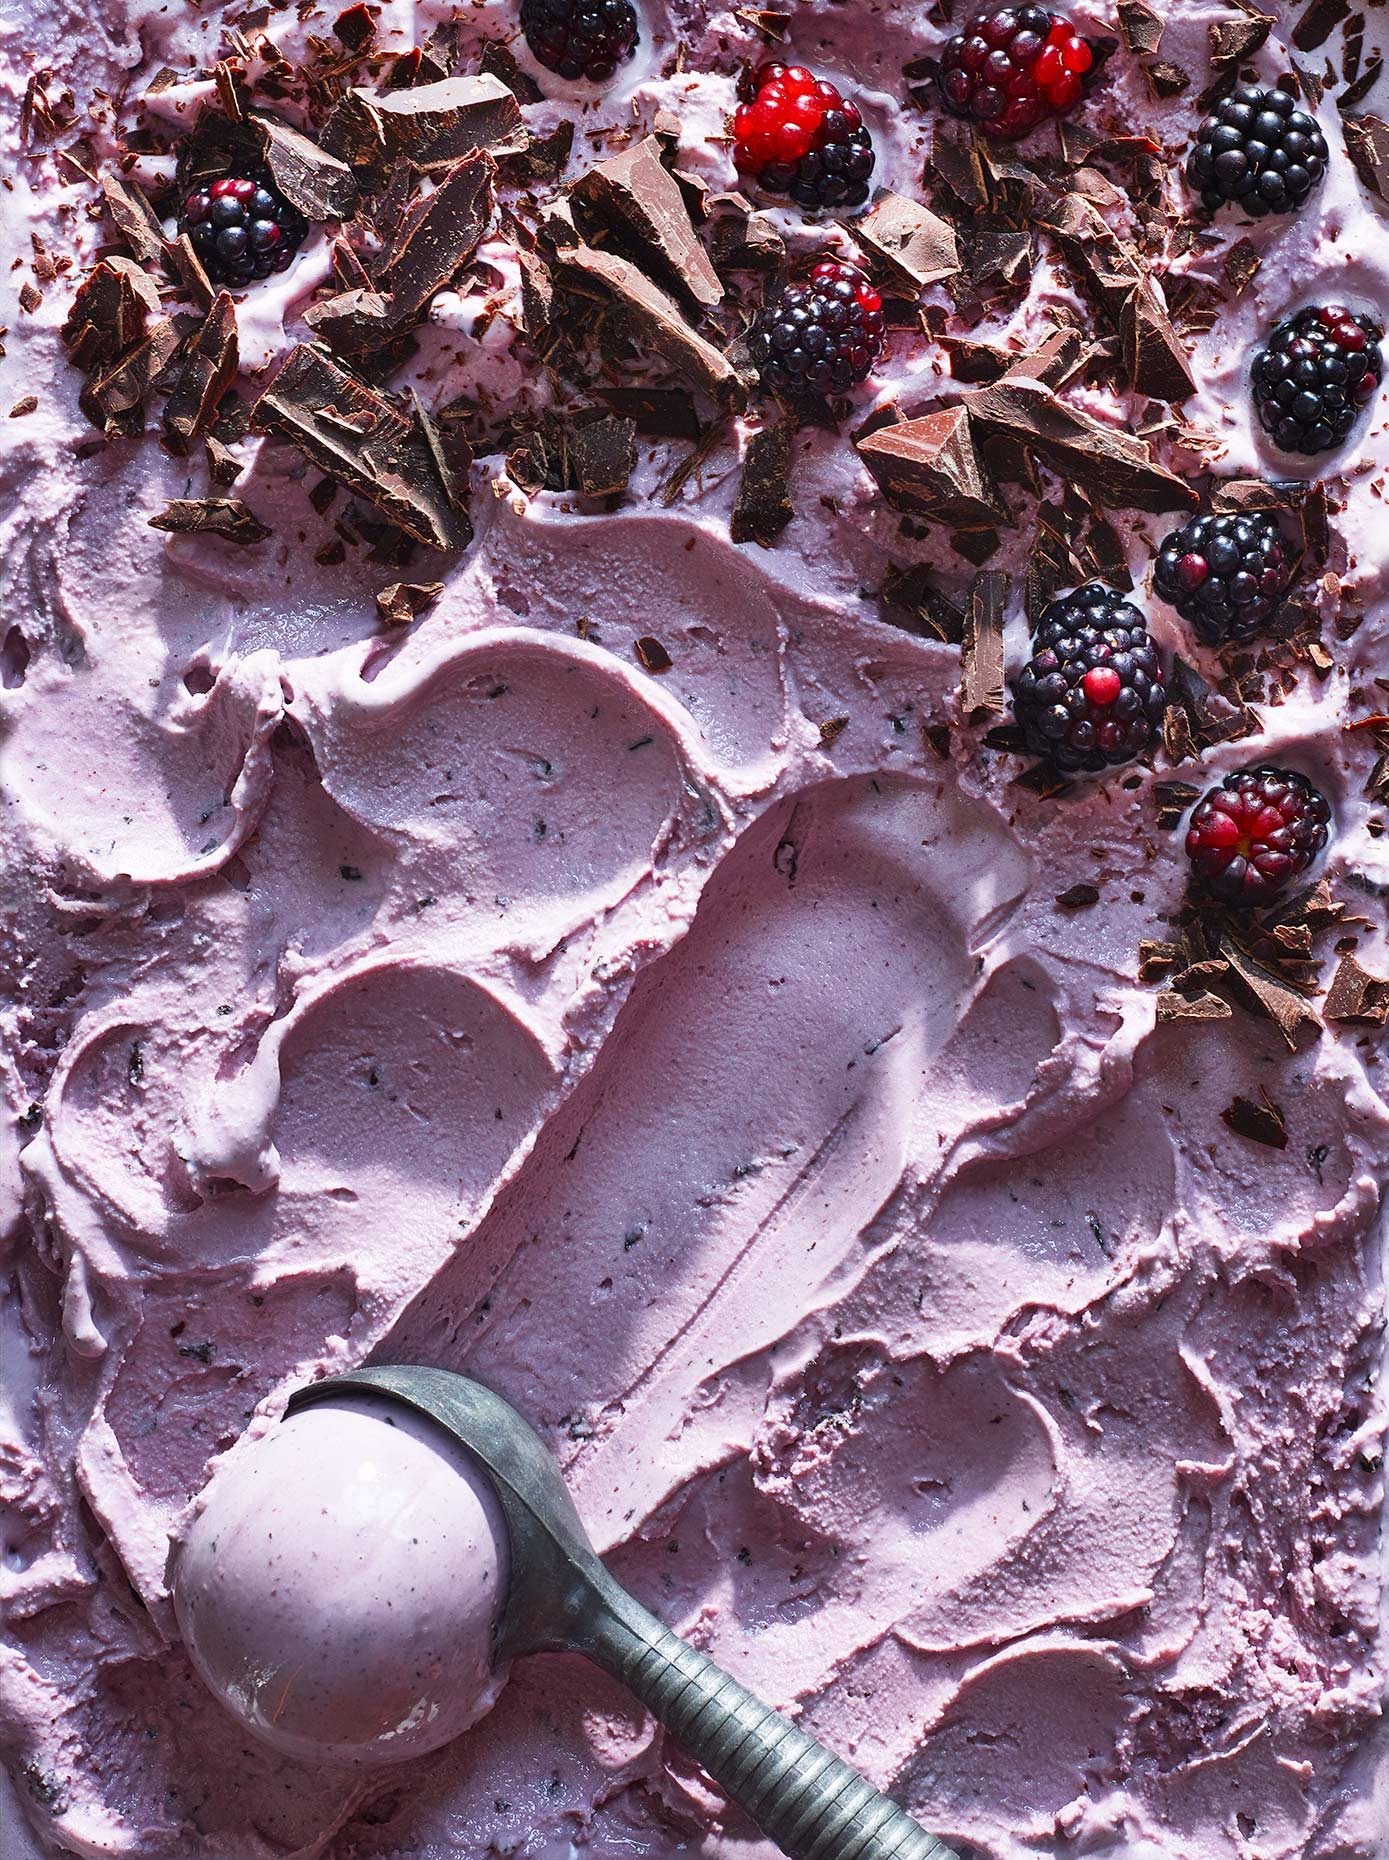 Icecream_Test_16580_Blackberry_web